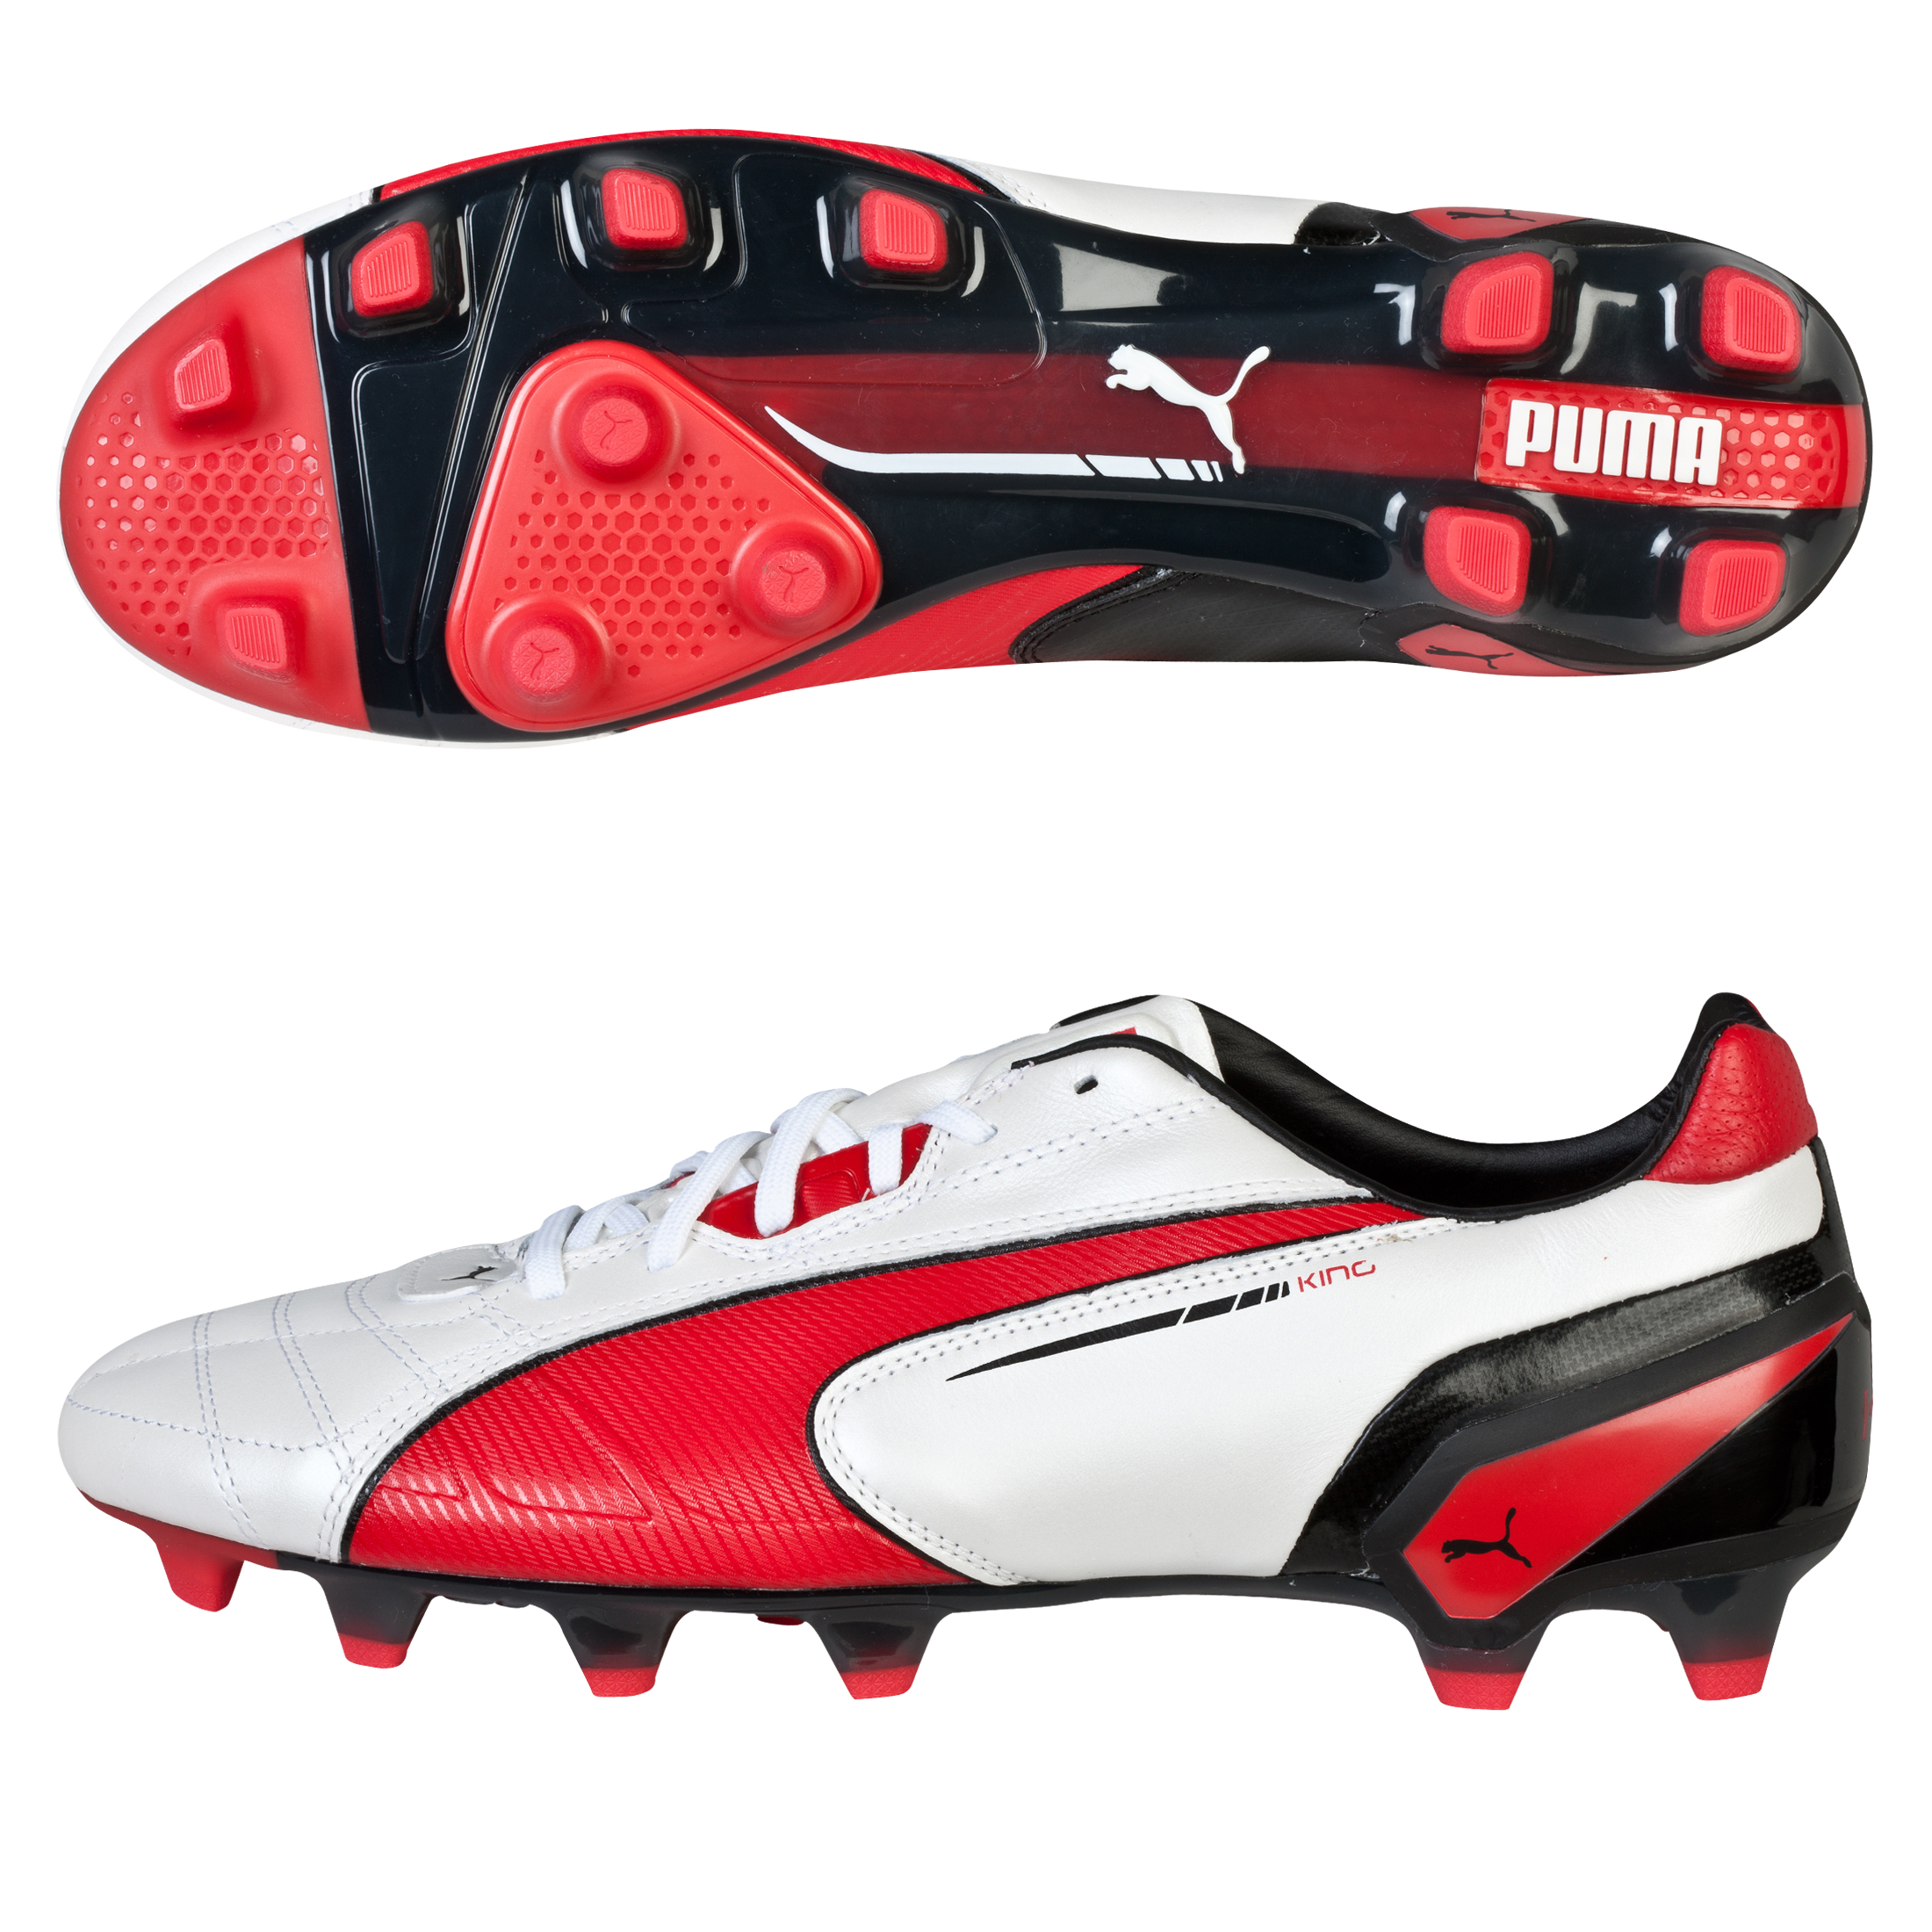 Puma King Firm Ground White